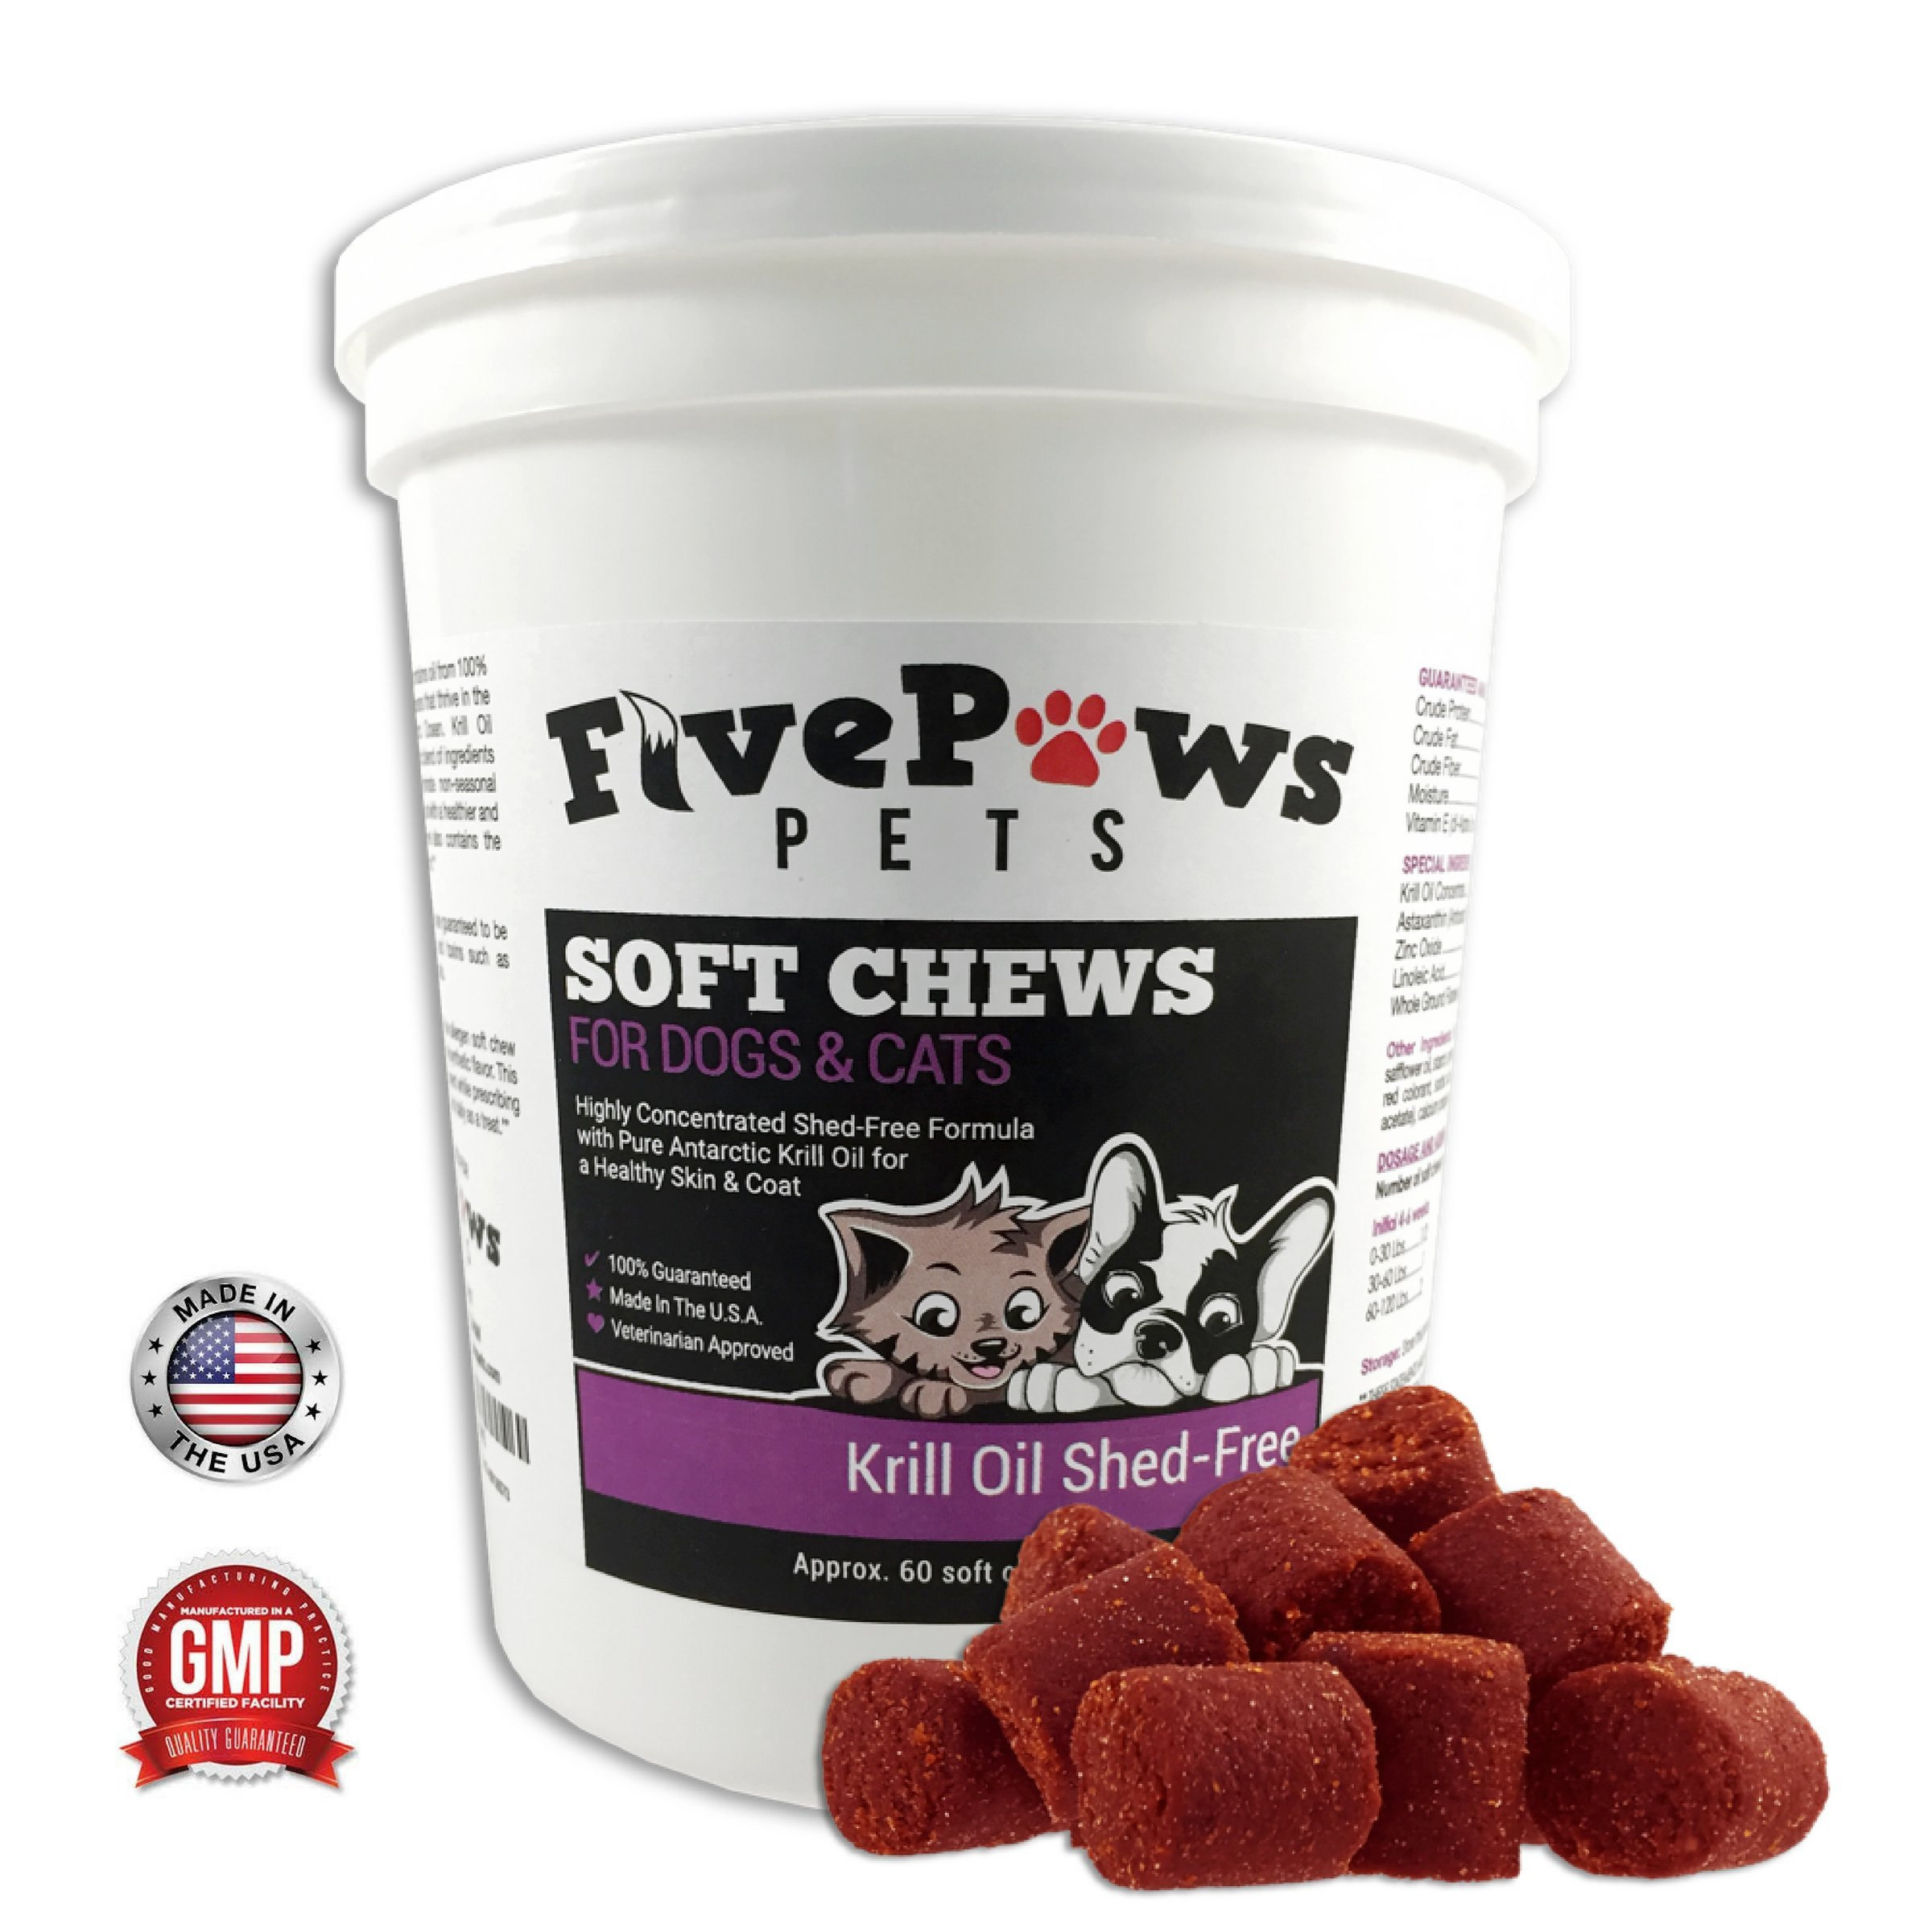 Omega 3 Chews Krill Oil Chews for Dogs - Shed Free Formula Relieves Skin Allergies -Reduces Shedding & Promotes Healthy Skin & Coat Gives Itching Relief -Antioxidant -Fish Oil 60 Soft Chews